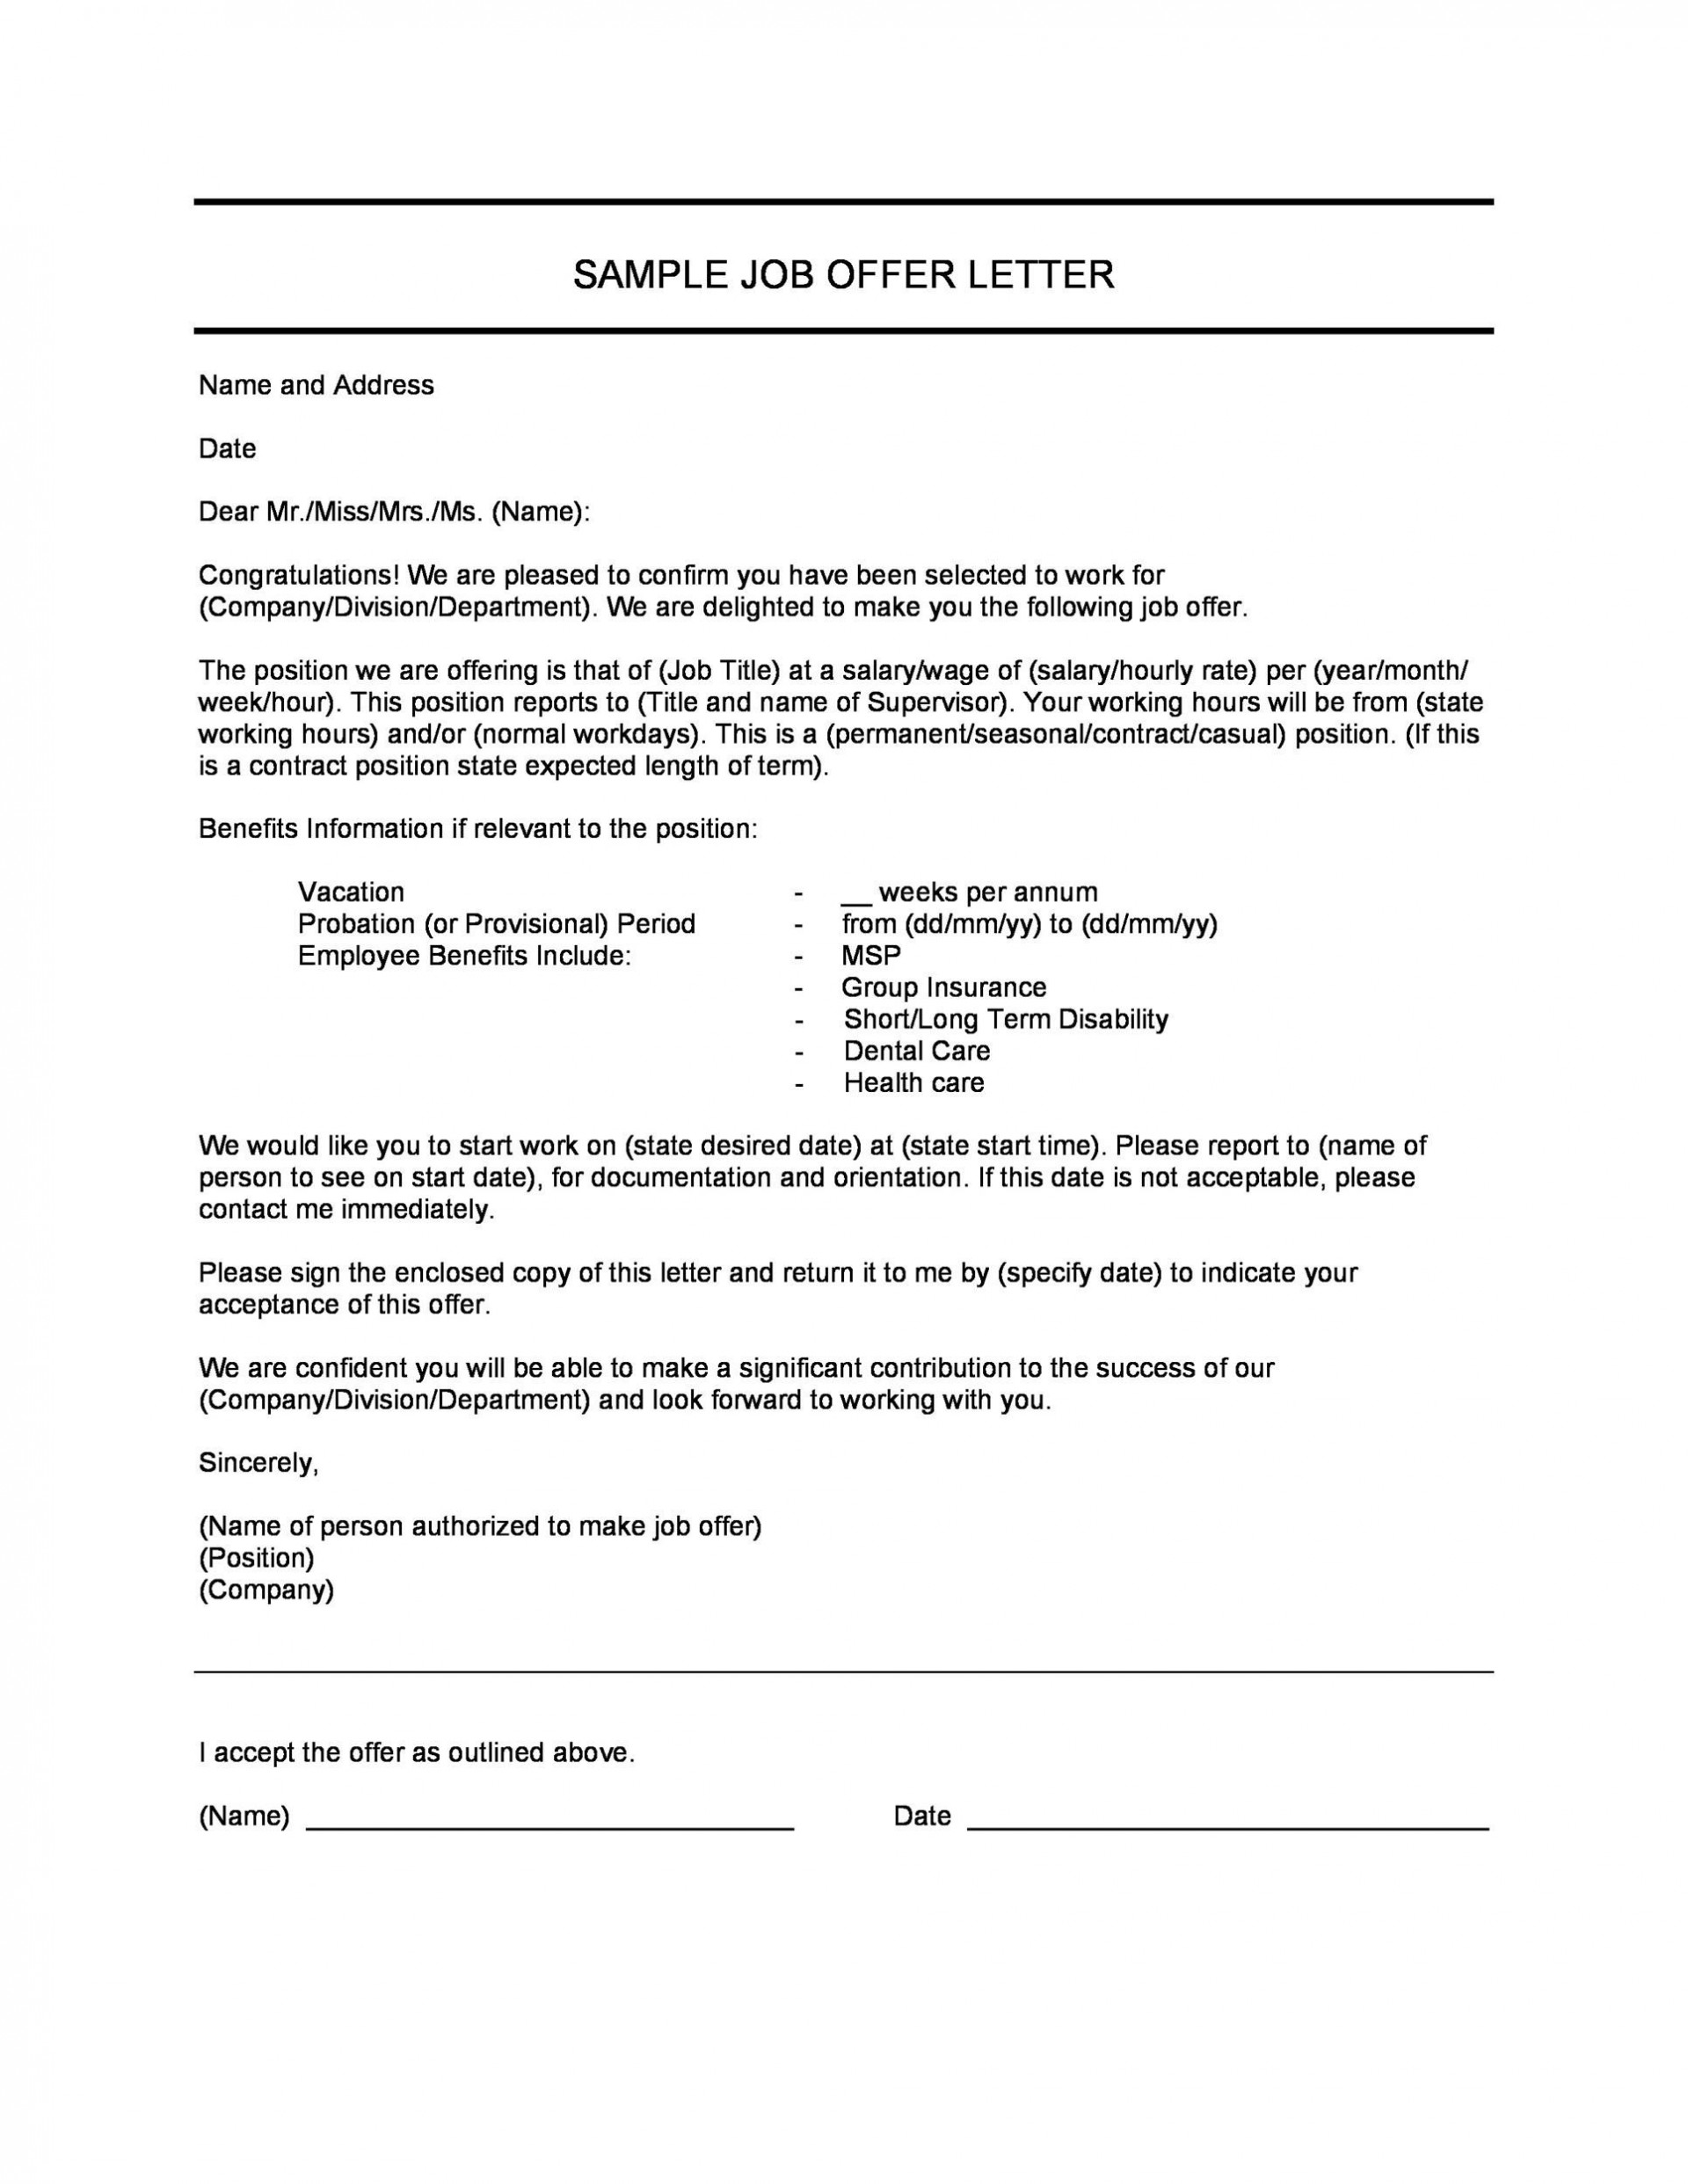 Sample Job Offer Letter Template from www.addictionary.org